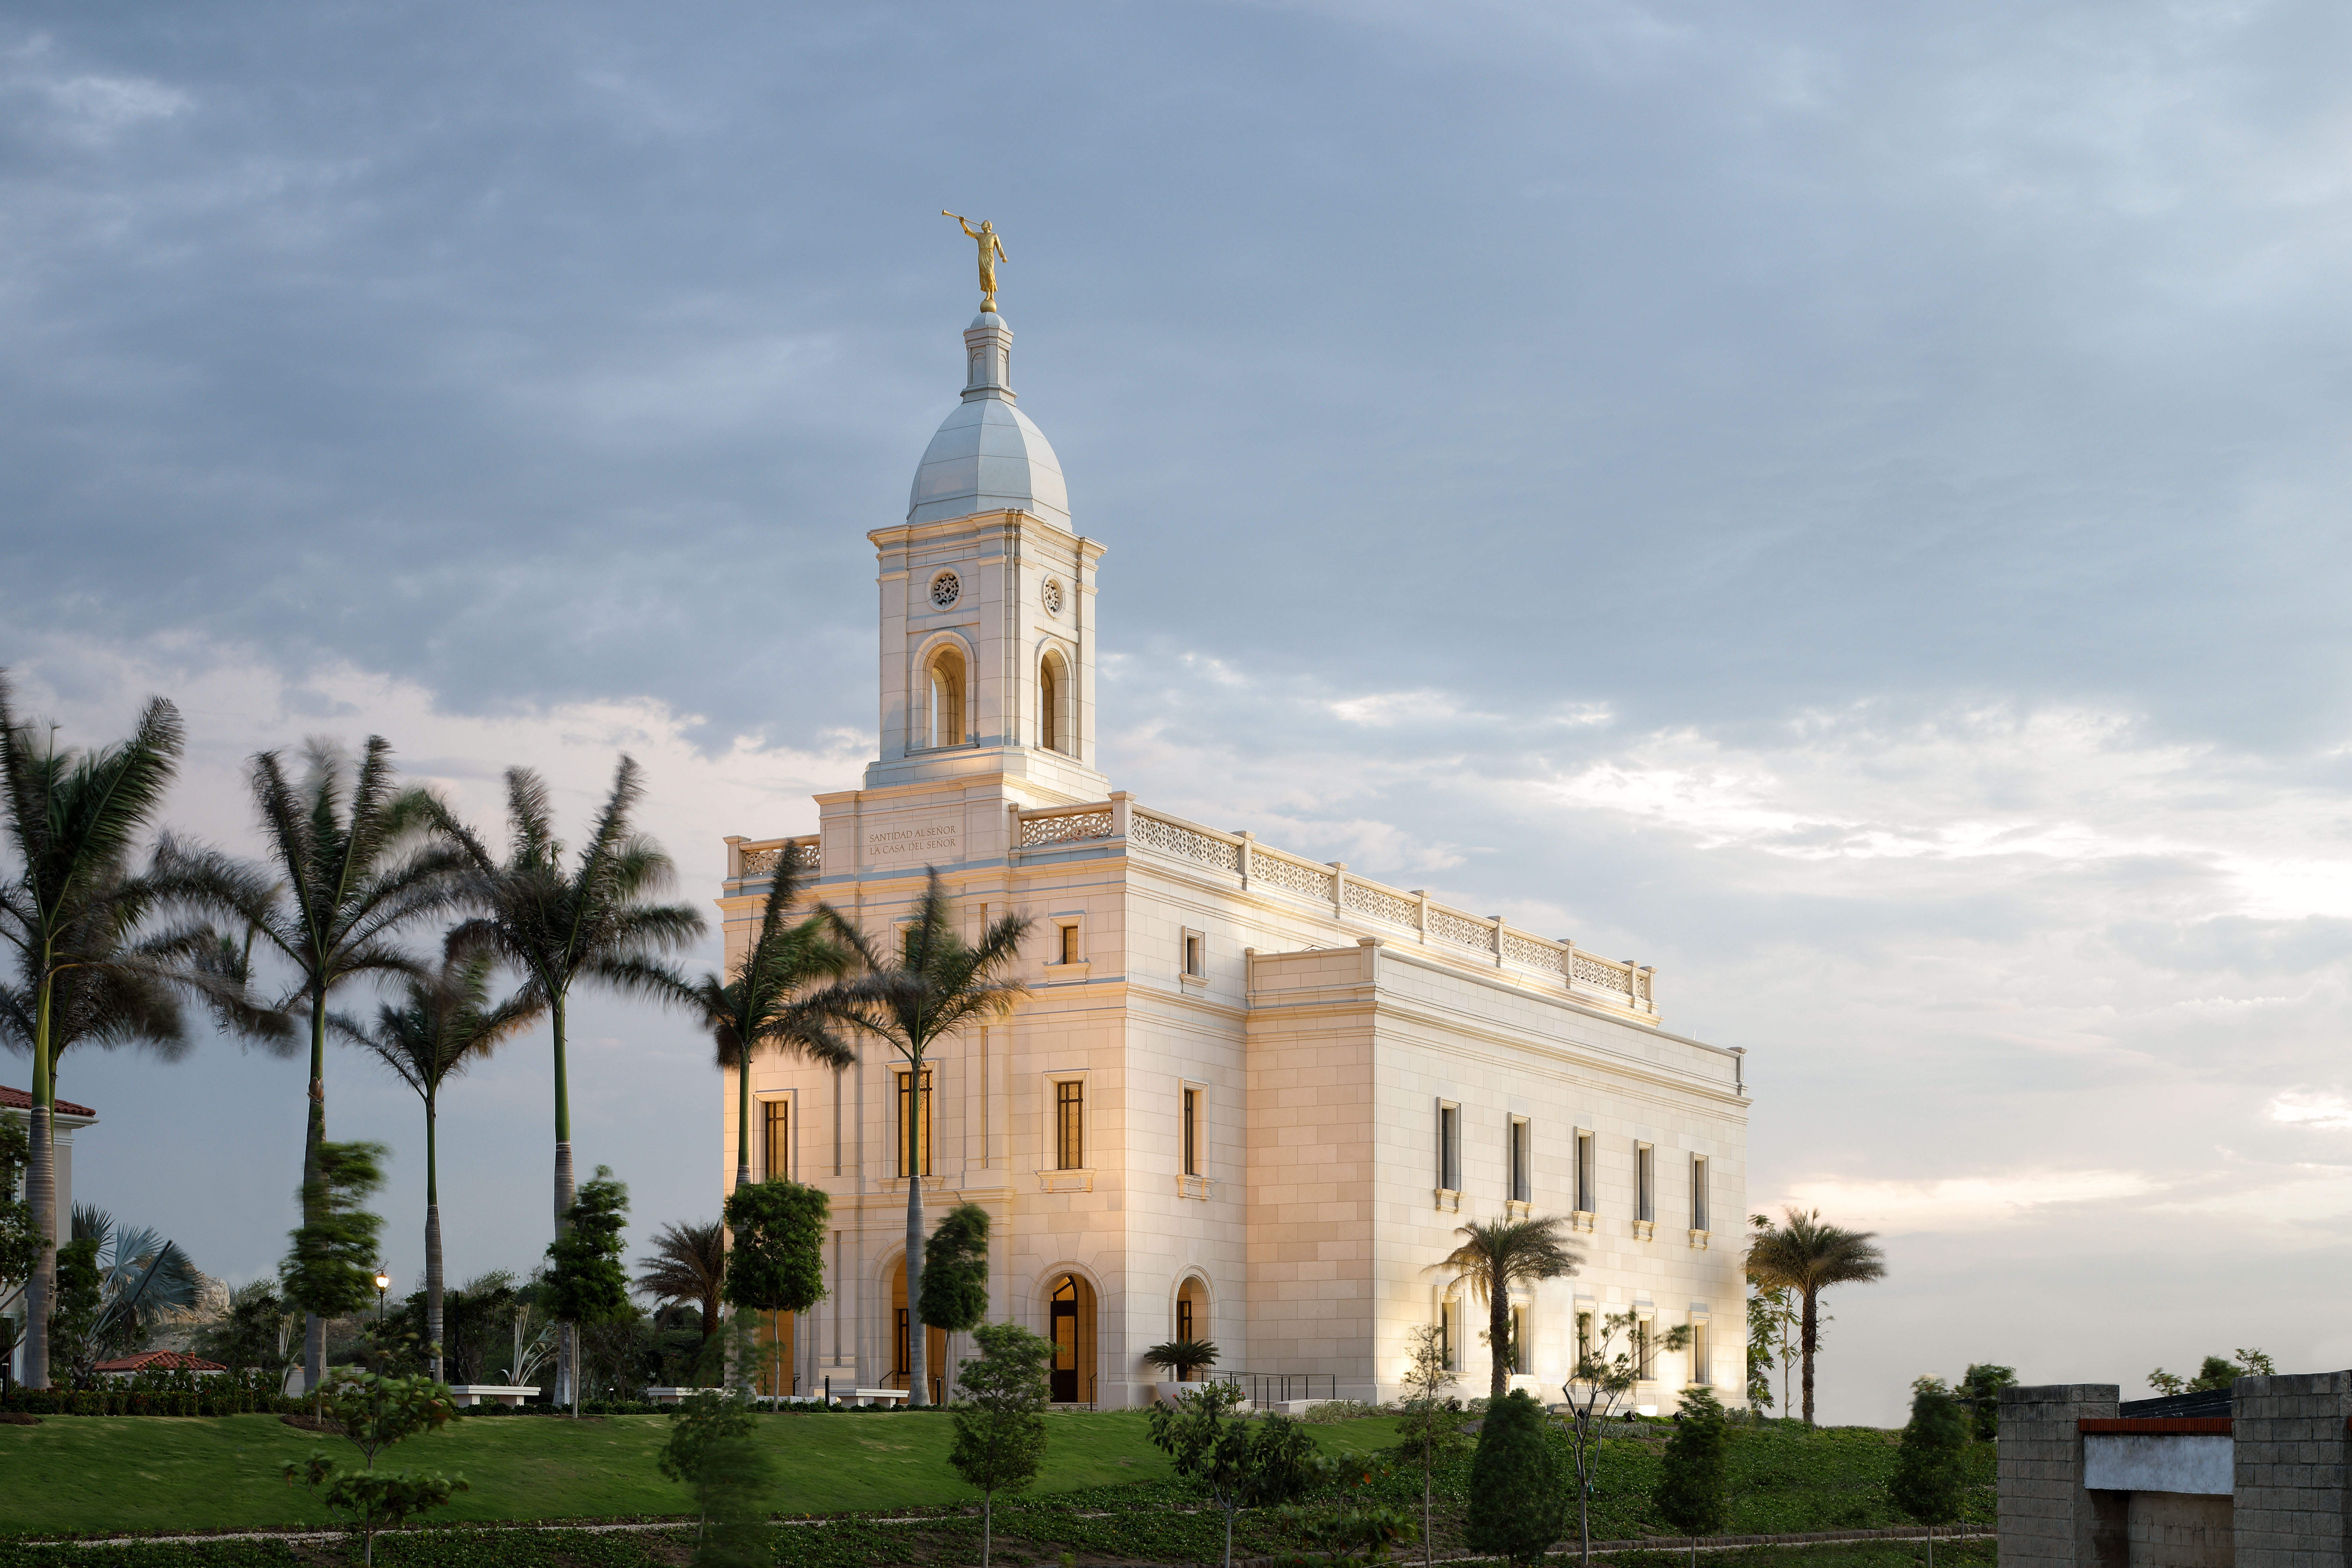 The Barranquilla Colombia Temple will be dedicated on Dec. 9.